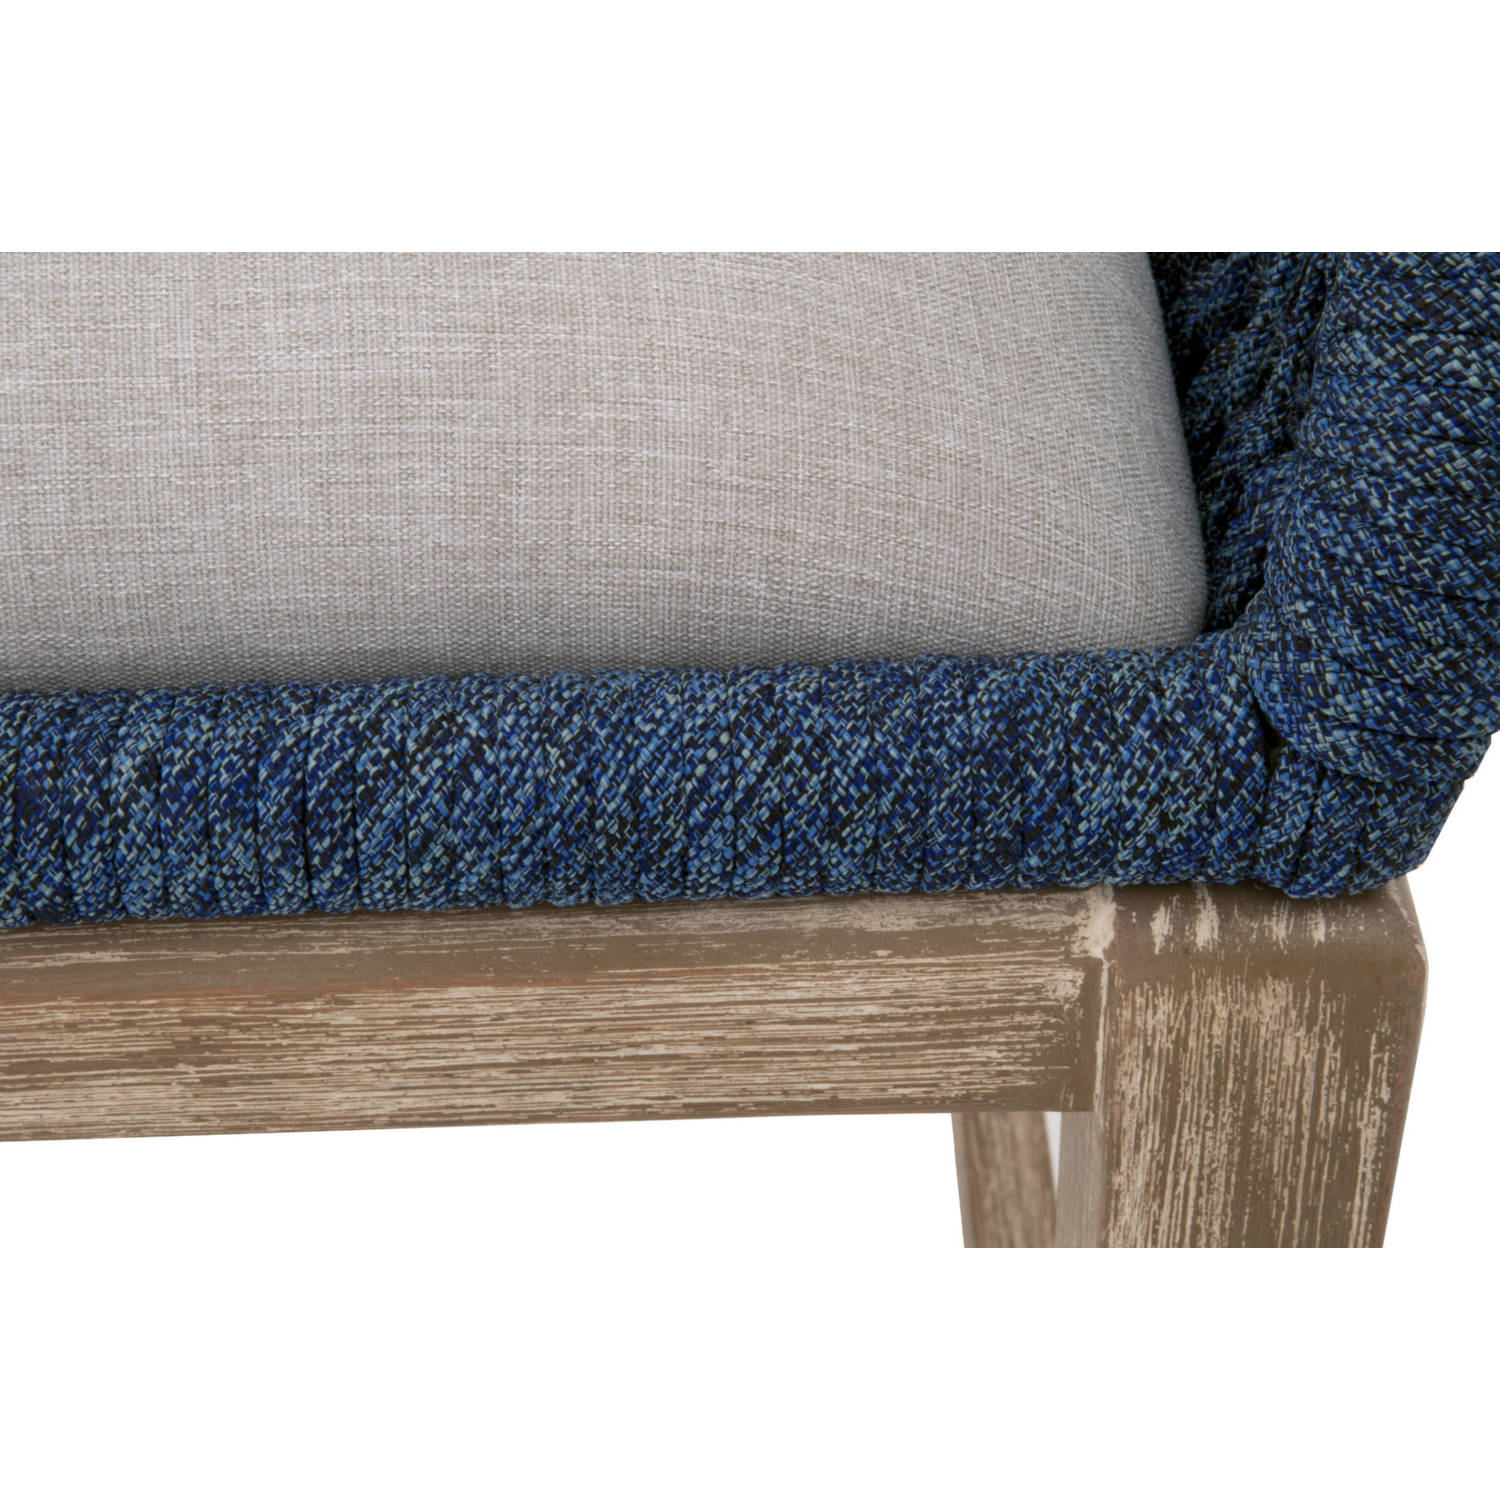 Peachy Loom Counter Stool In Indigo Blue Rope Wood Fabric By Orient Express Furniture Machost Co Dining Chair Design Ideas Machostcouk